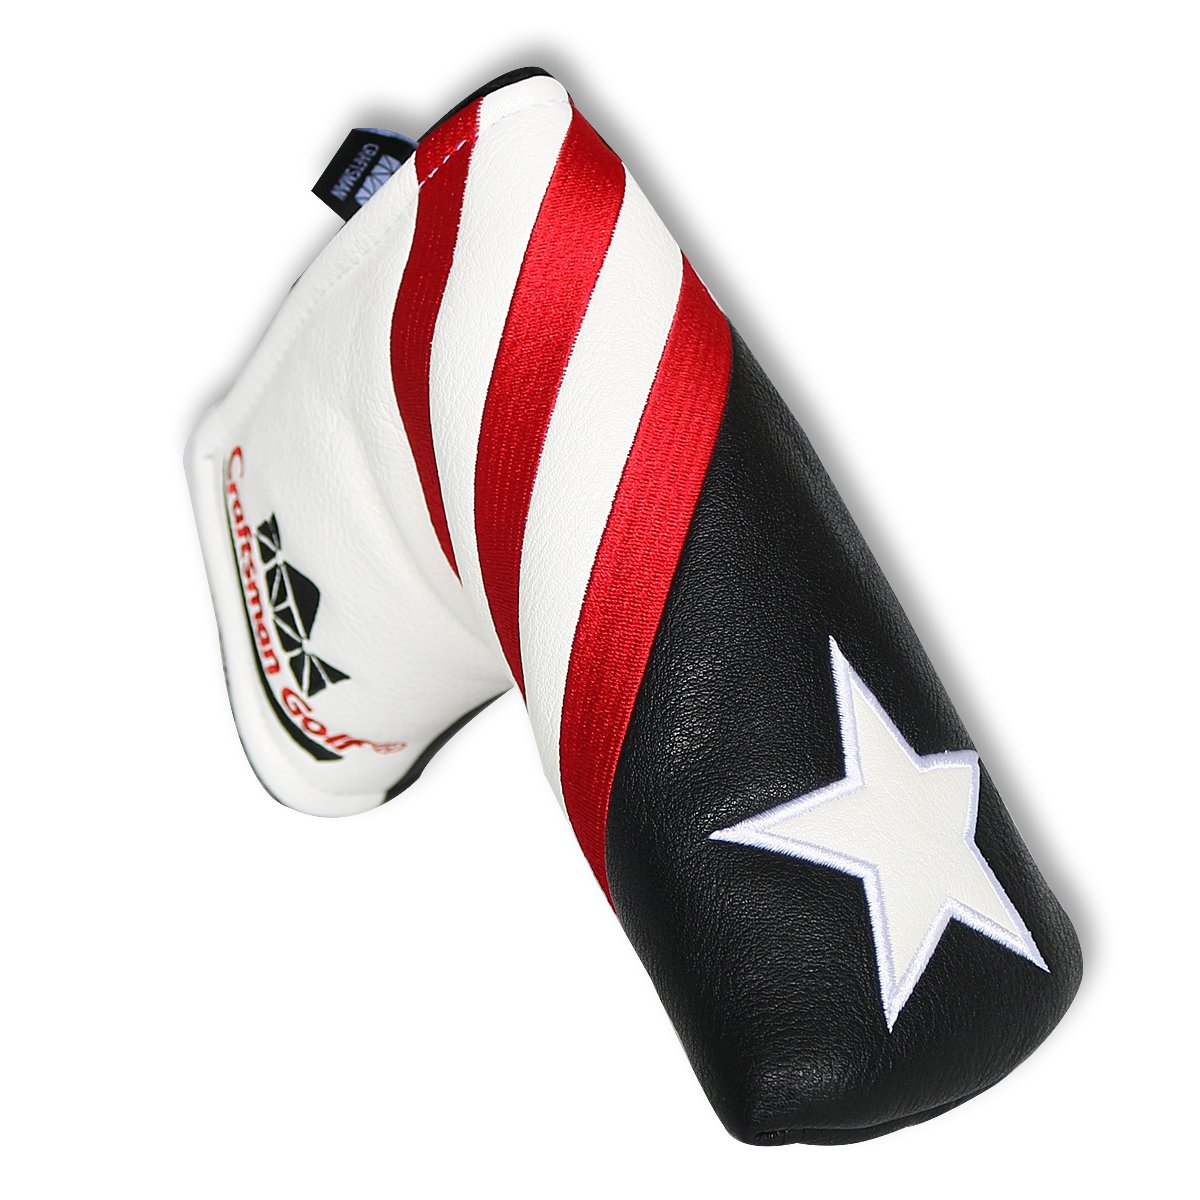 Craftsman Golf Black White Red Stripes USA Star Blade Putter Cover for Scotty Cameron Odyssey Titleist Ping Callaway